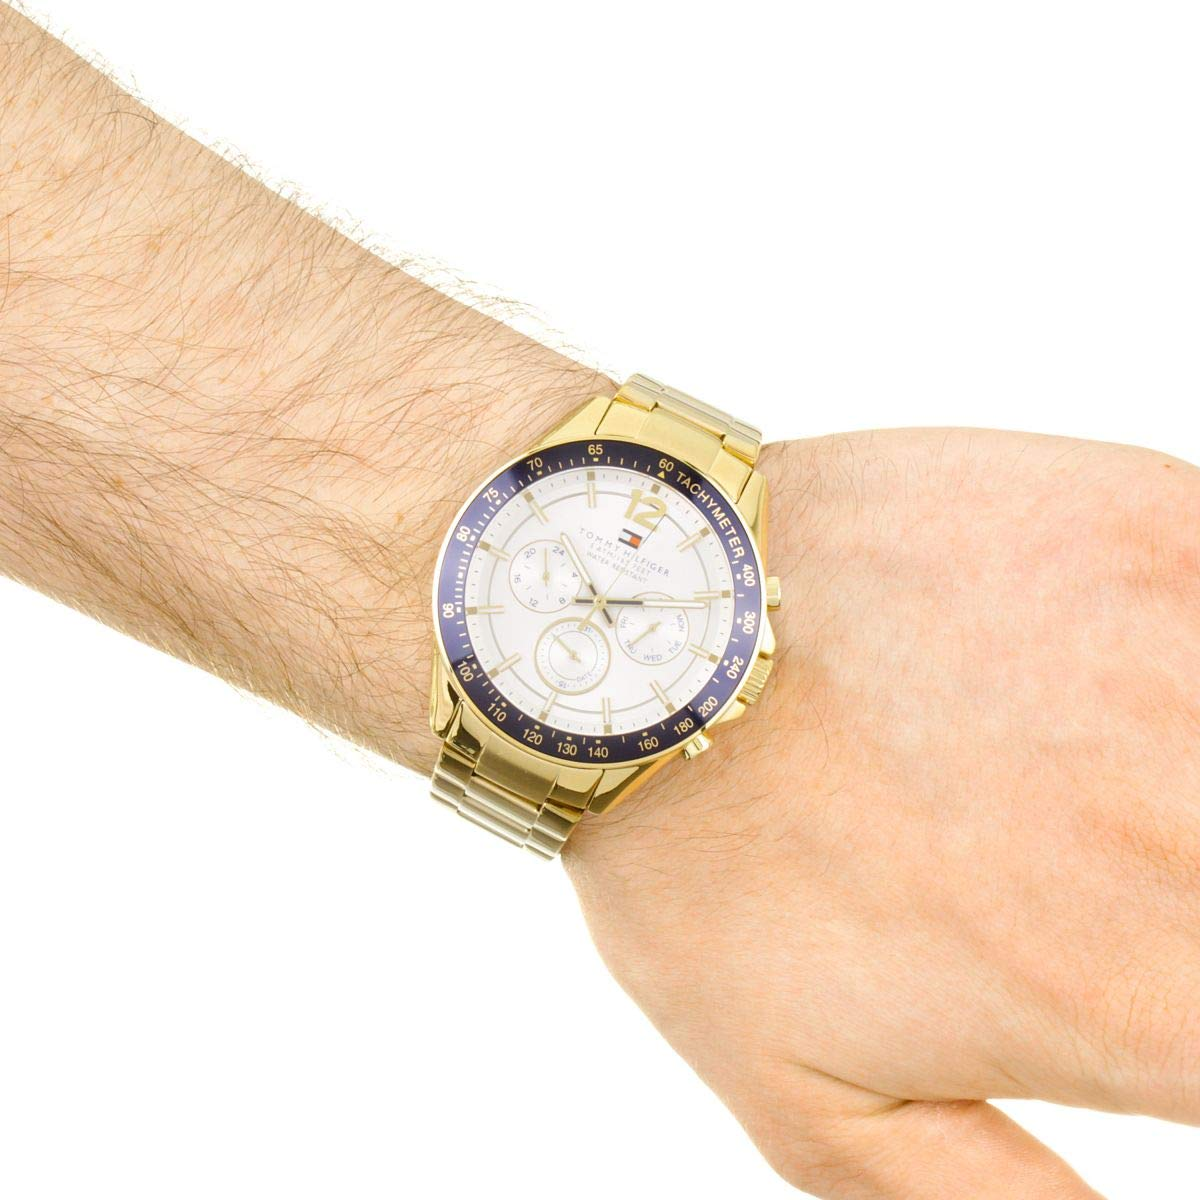 a5b0eb87bf Tommy Hilfiger Mens Quartz Watch, multi dial Display and Stainless Steel  Strap 1791121